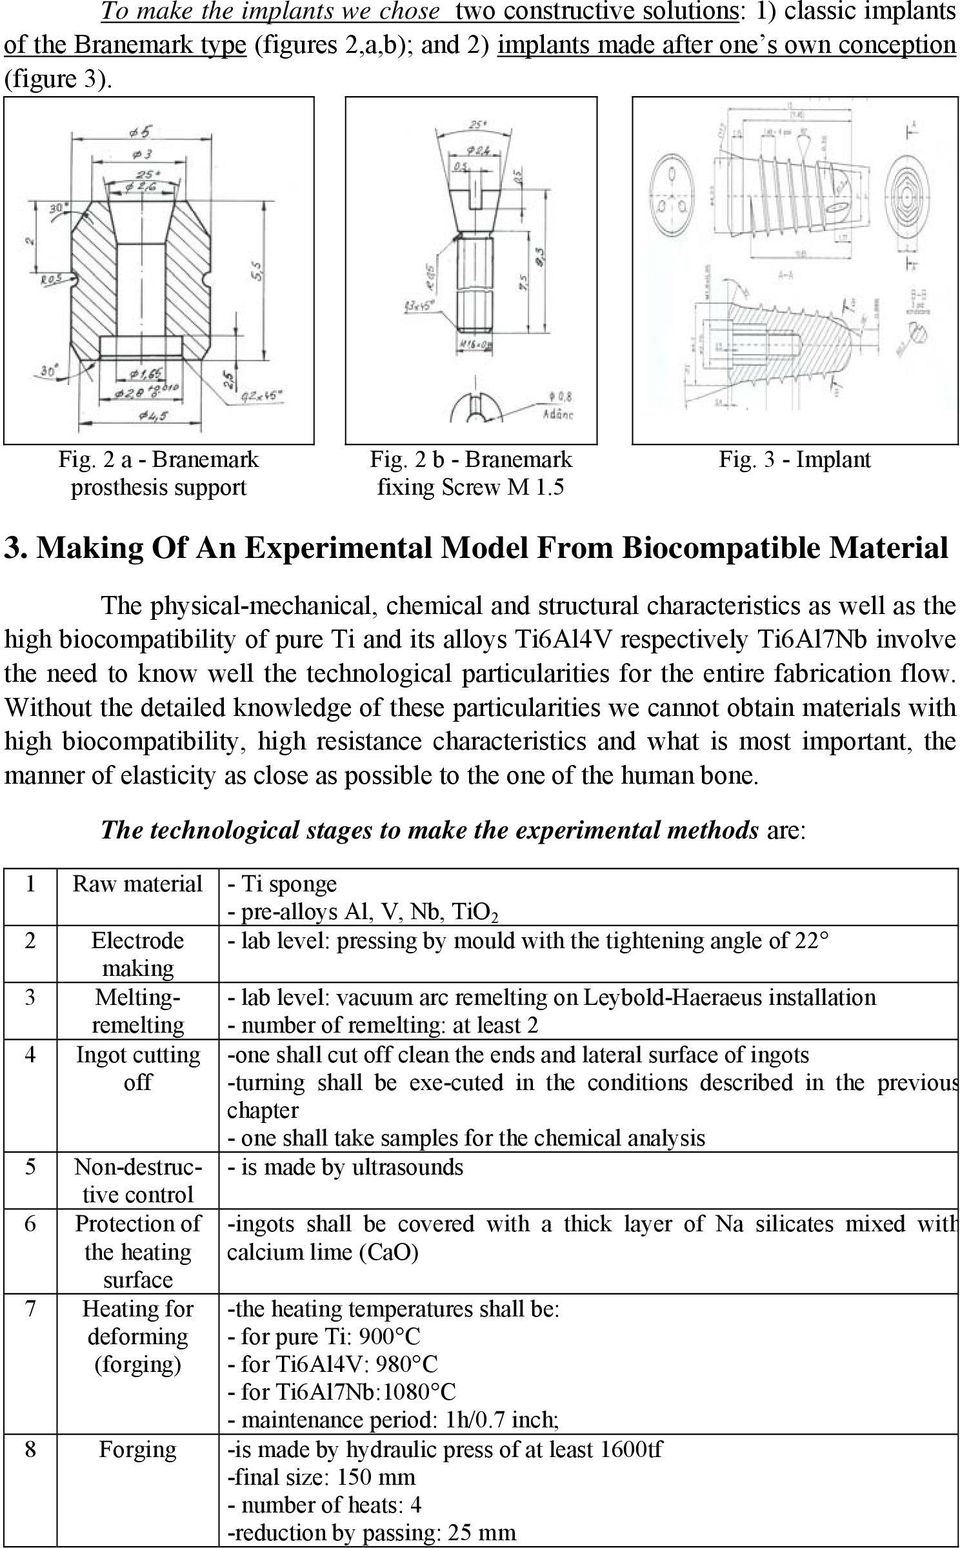 Making Of An Experimental Model From Biocompatible Material The physical-mechanical, chemical and structural characteristics as well as the high biocompatibility of pure Ti and its alloys Ti6Al4V